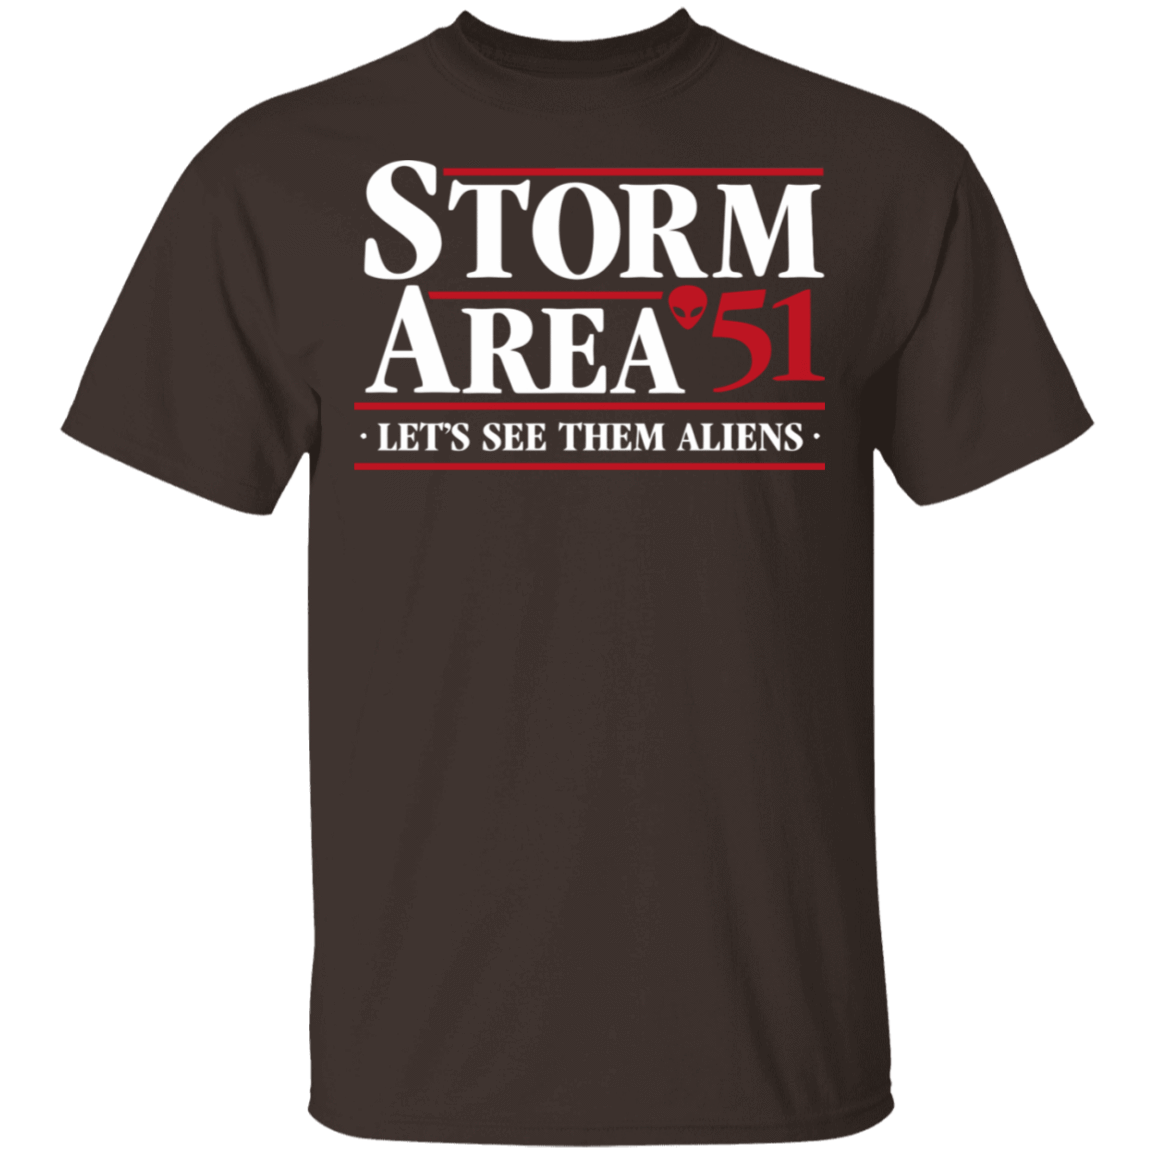 Storm Area 51 - Let's See Them Aliens - September 20 T-Shirts, Hoodies, Tank 22-2283-79271383-12087 - Tee Ript